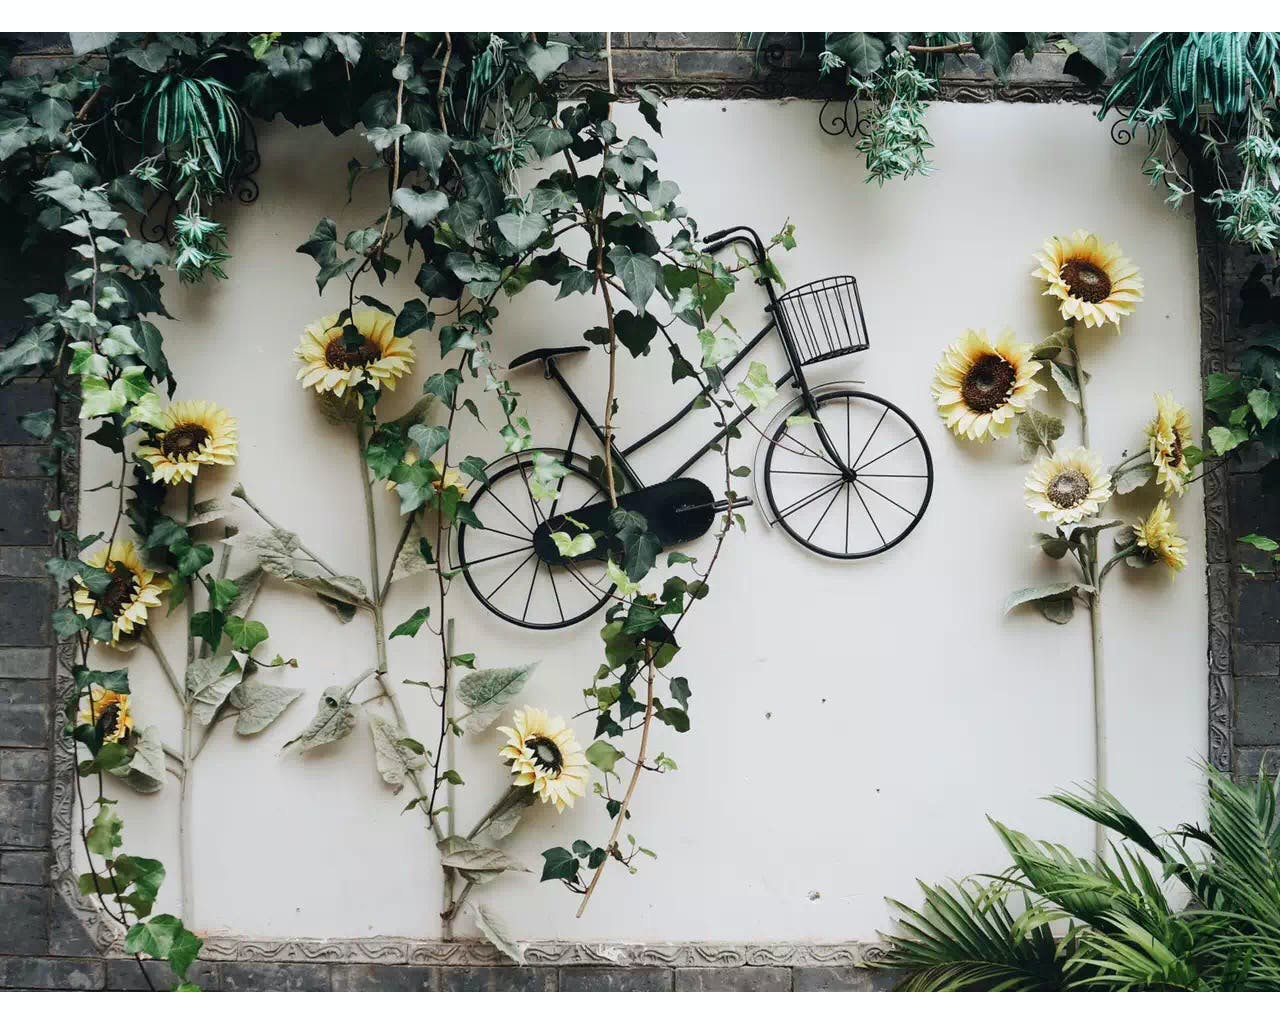 Free stock photo of wall, flower, green, bike